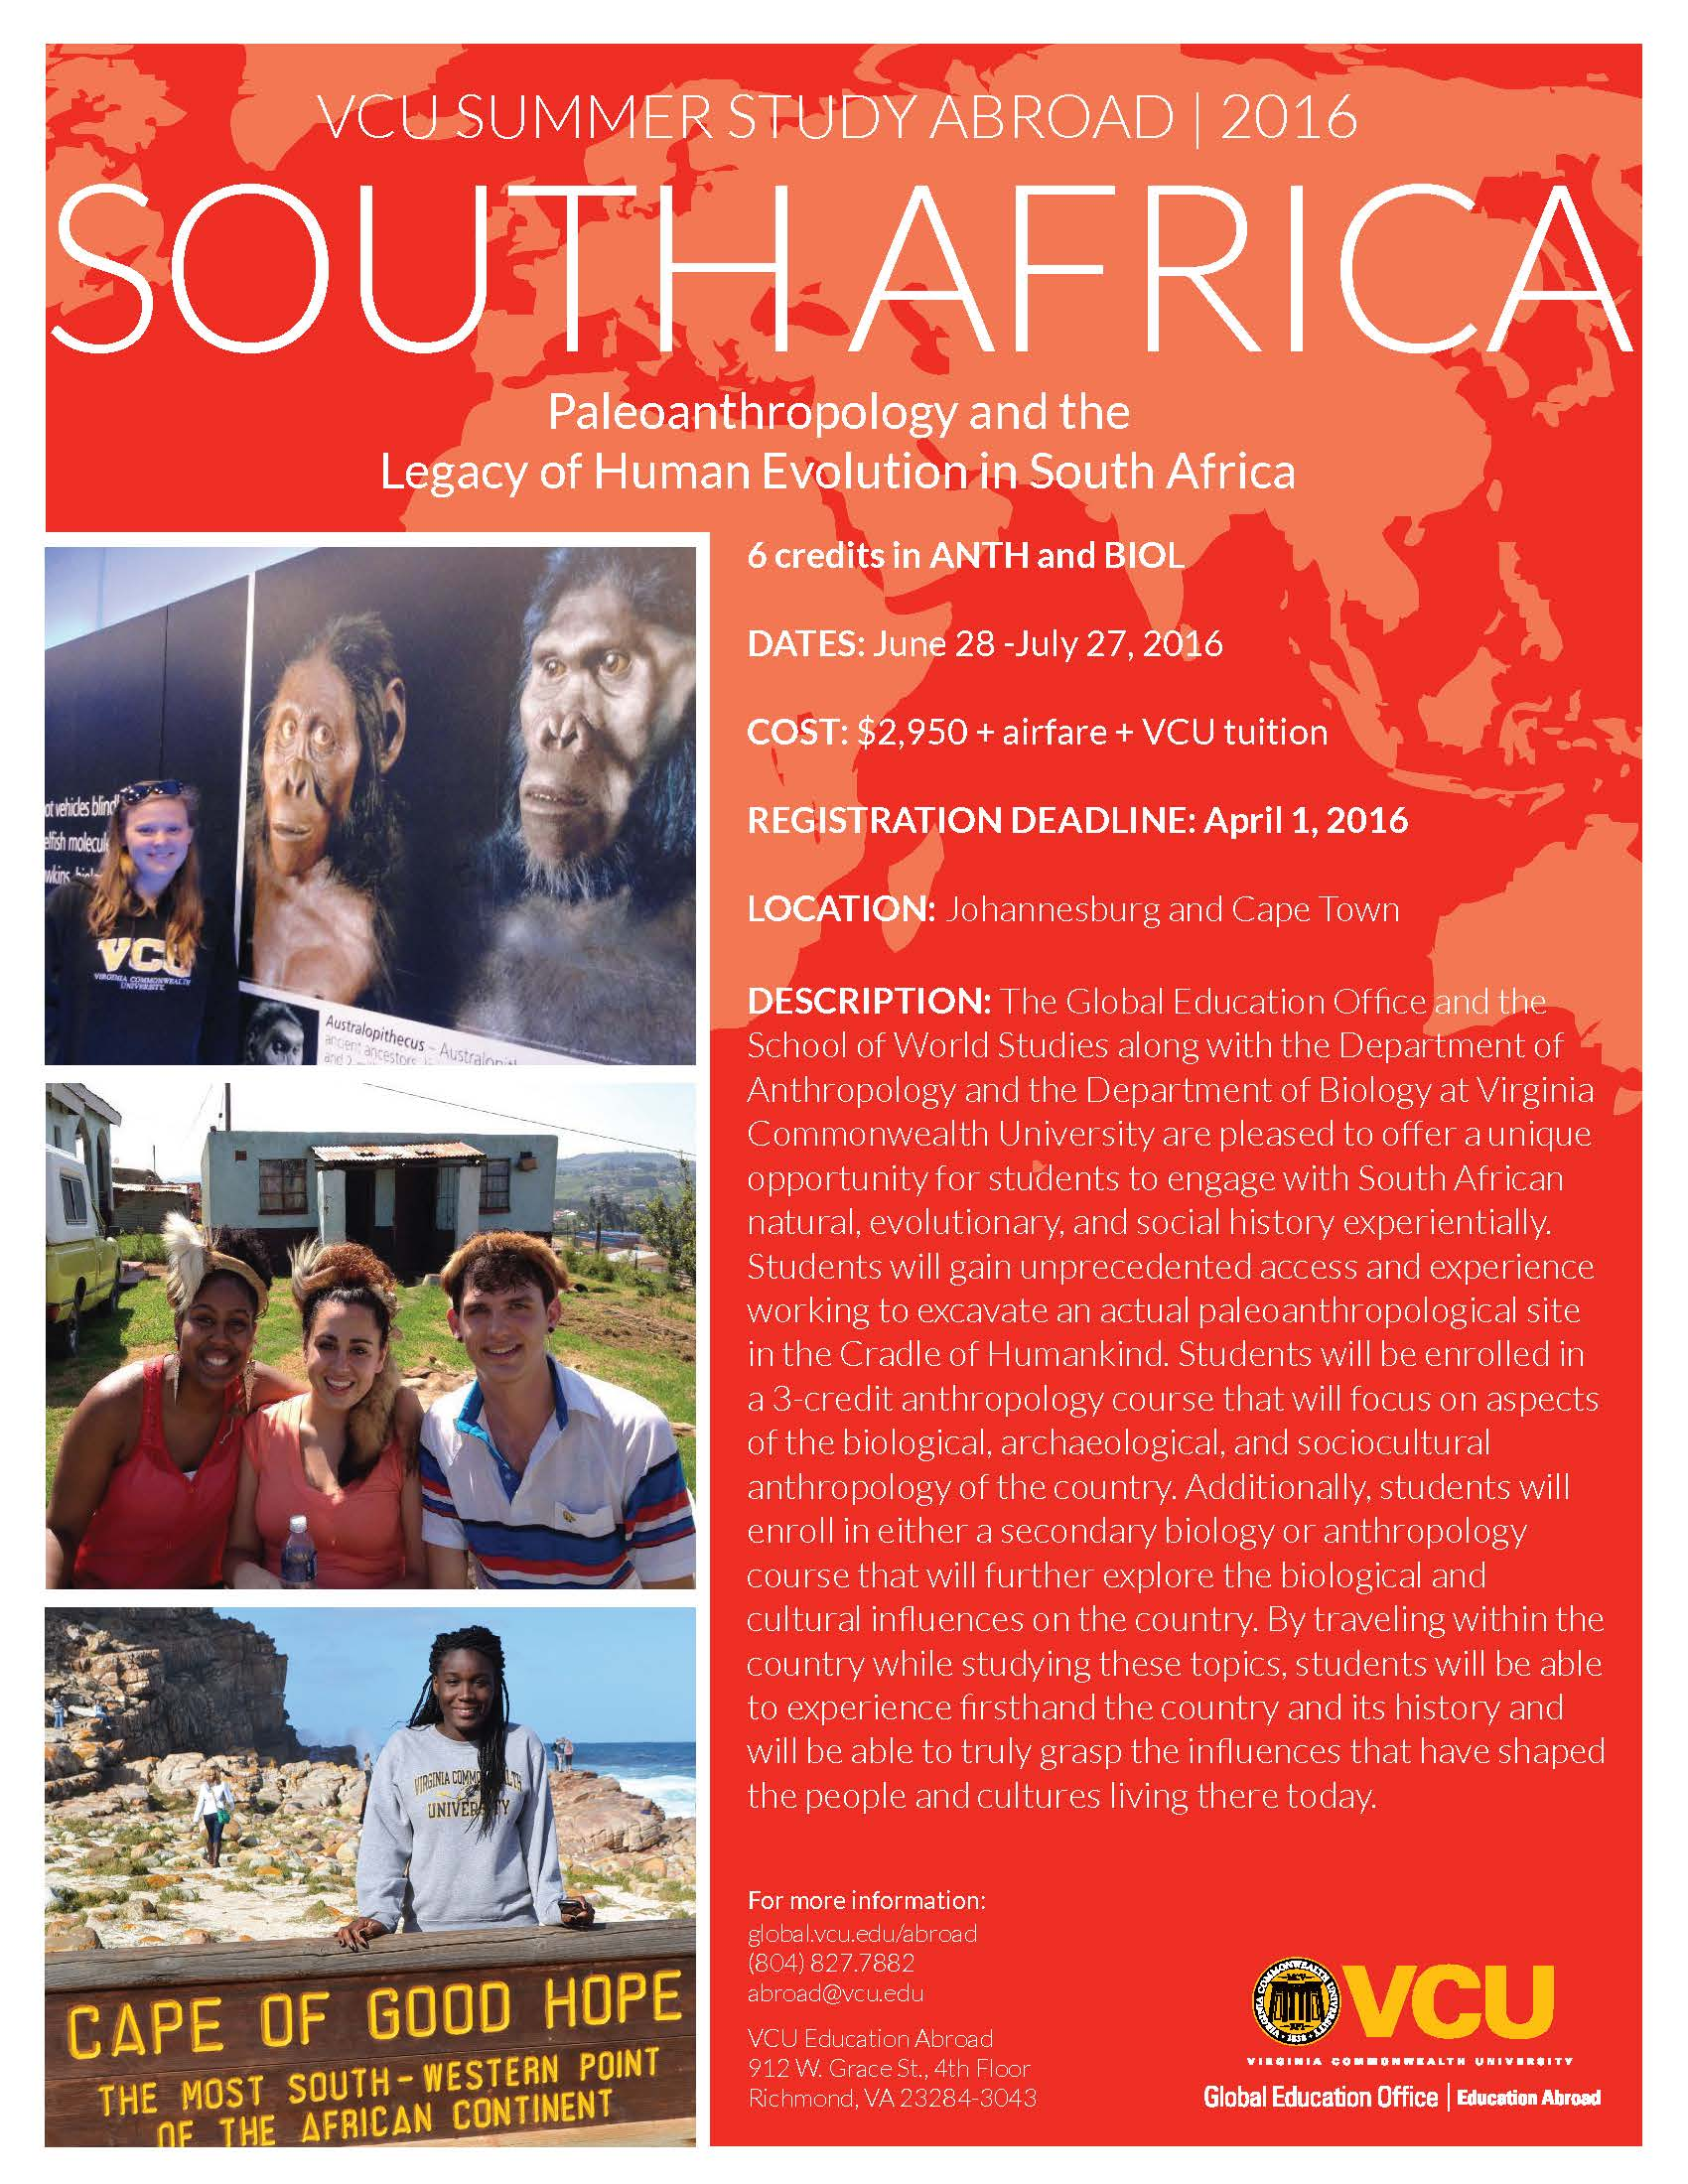 South Africa_Paleoanthropology_Flier (002)_Page_1